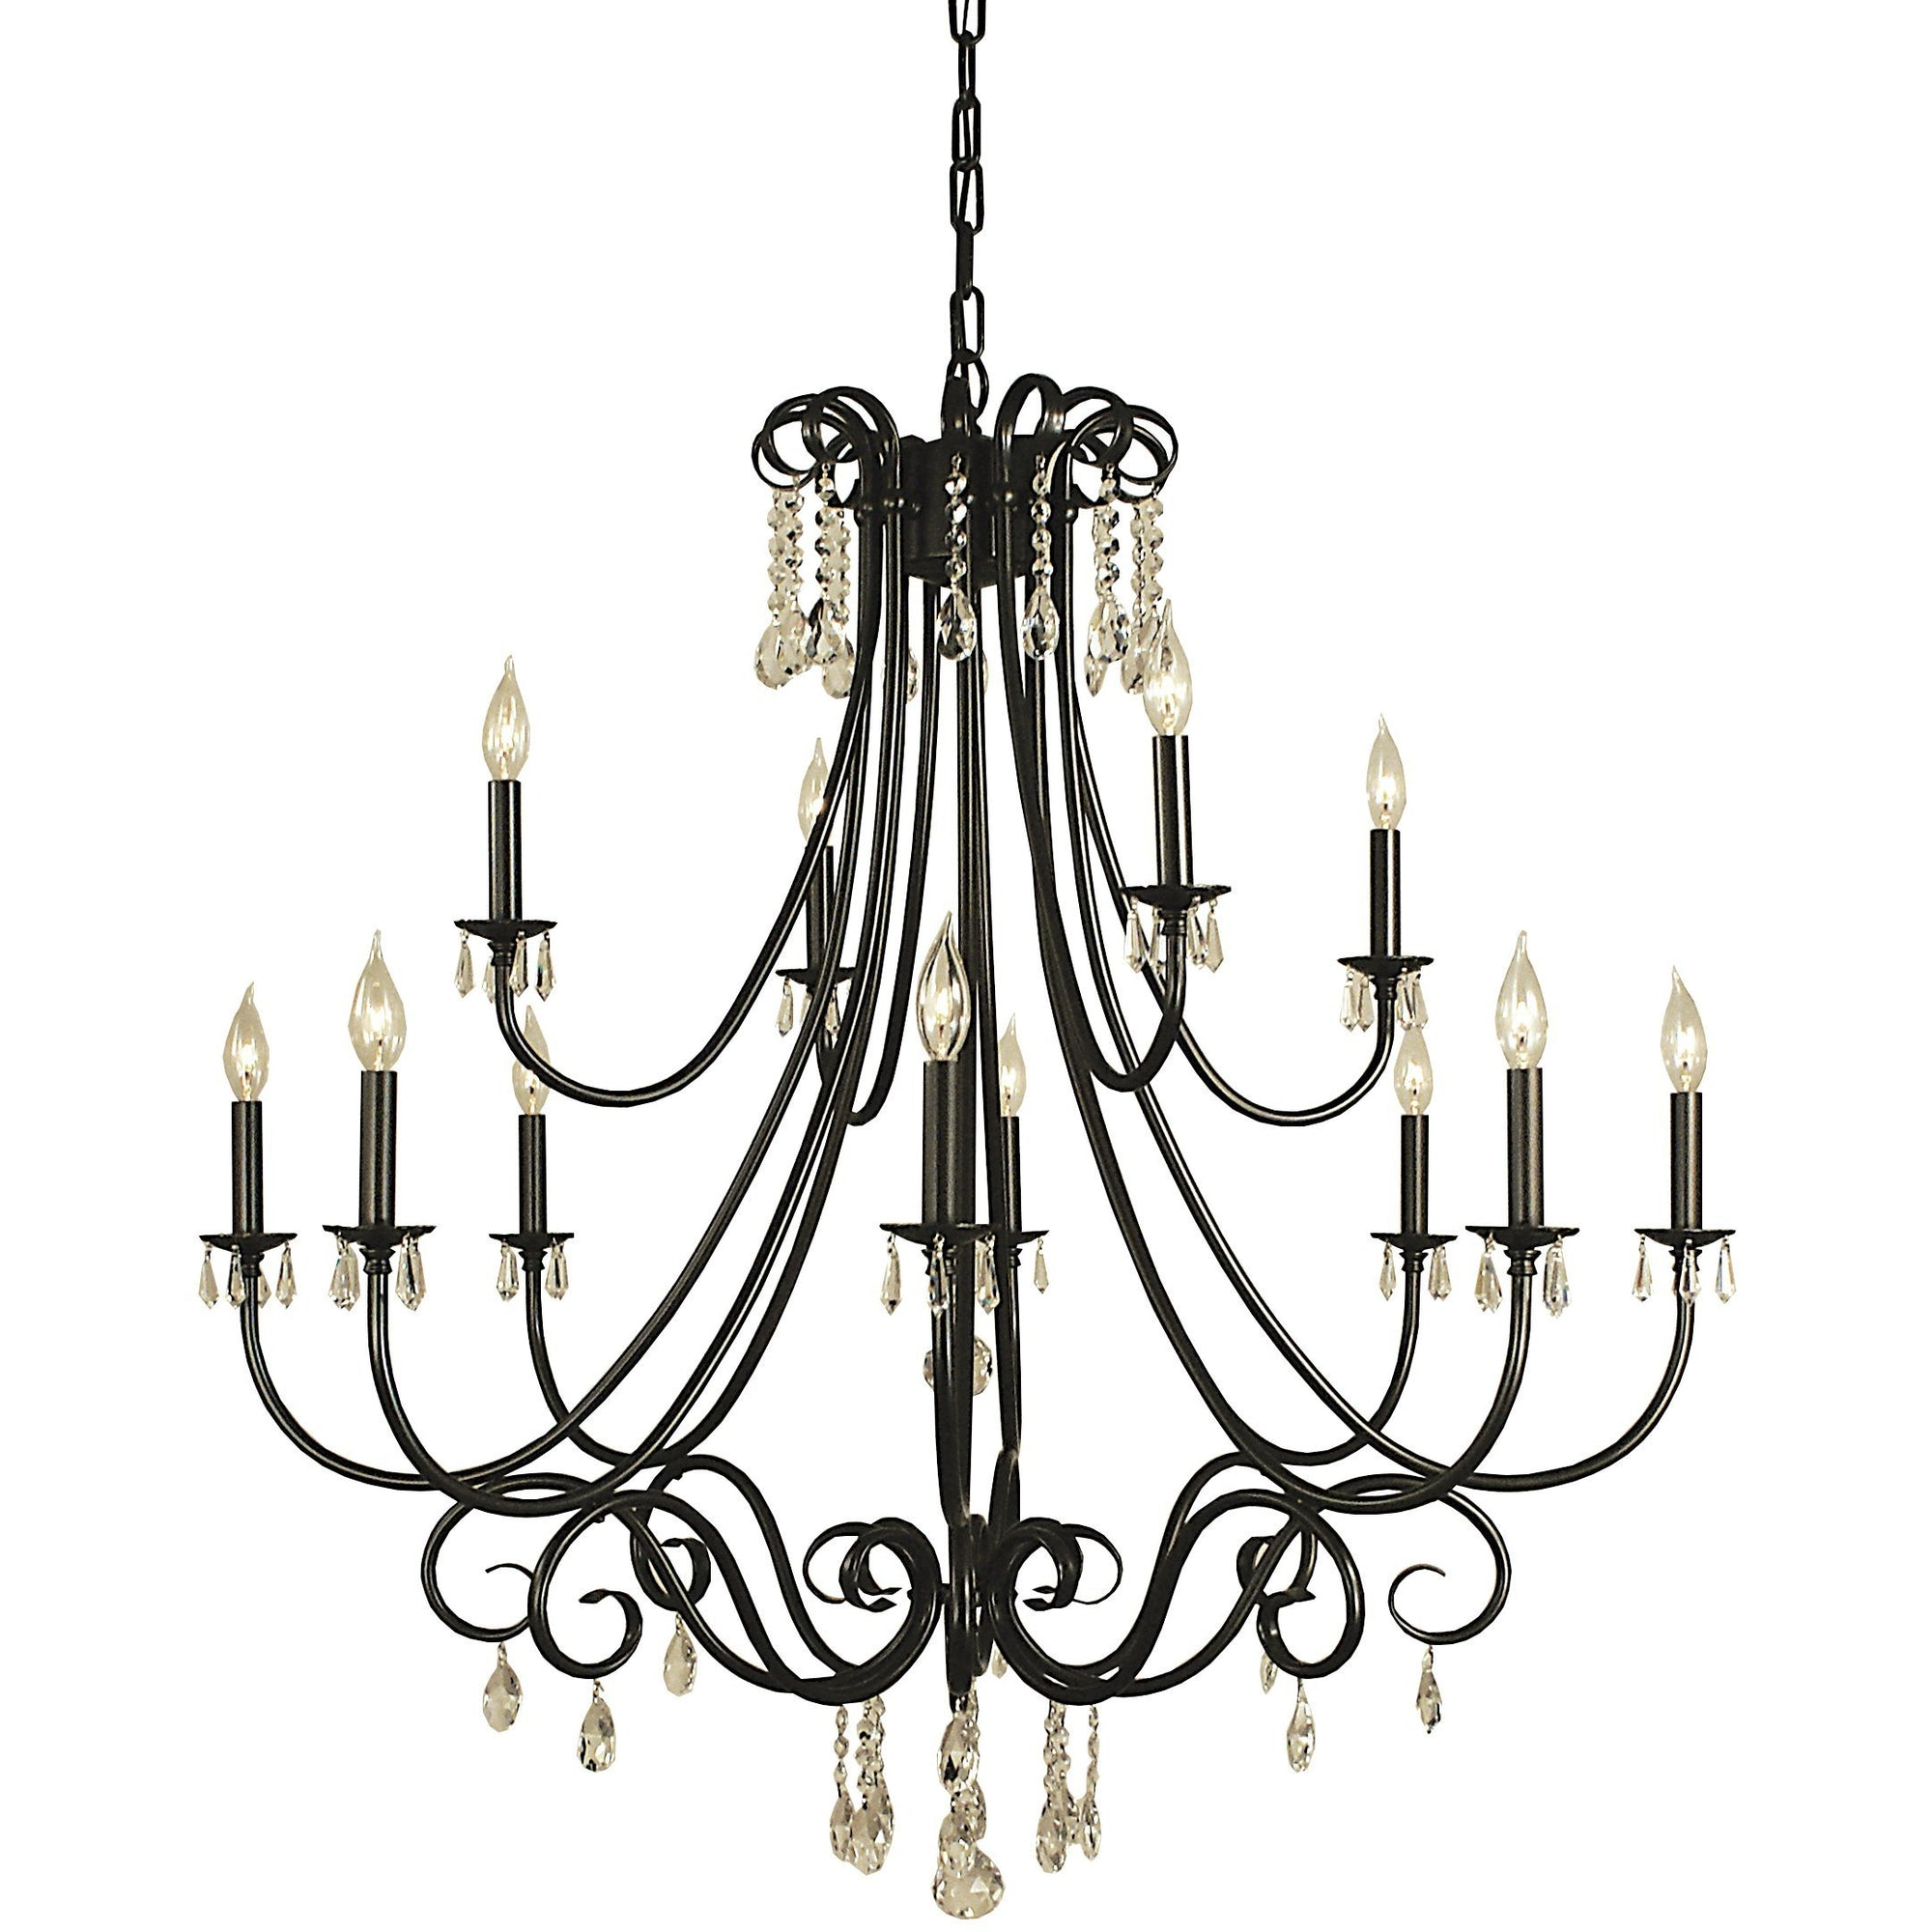 Framburg Foyer Chandeliers Mahogany Bronze 12-Light Mahogany Bronze Liebestraum Foyer Chandelier by Framburg 2997